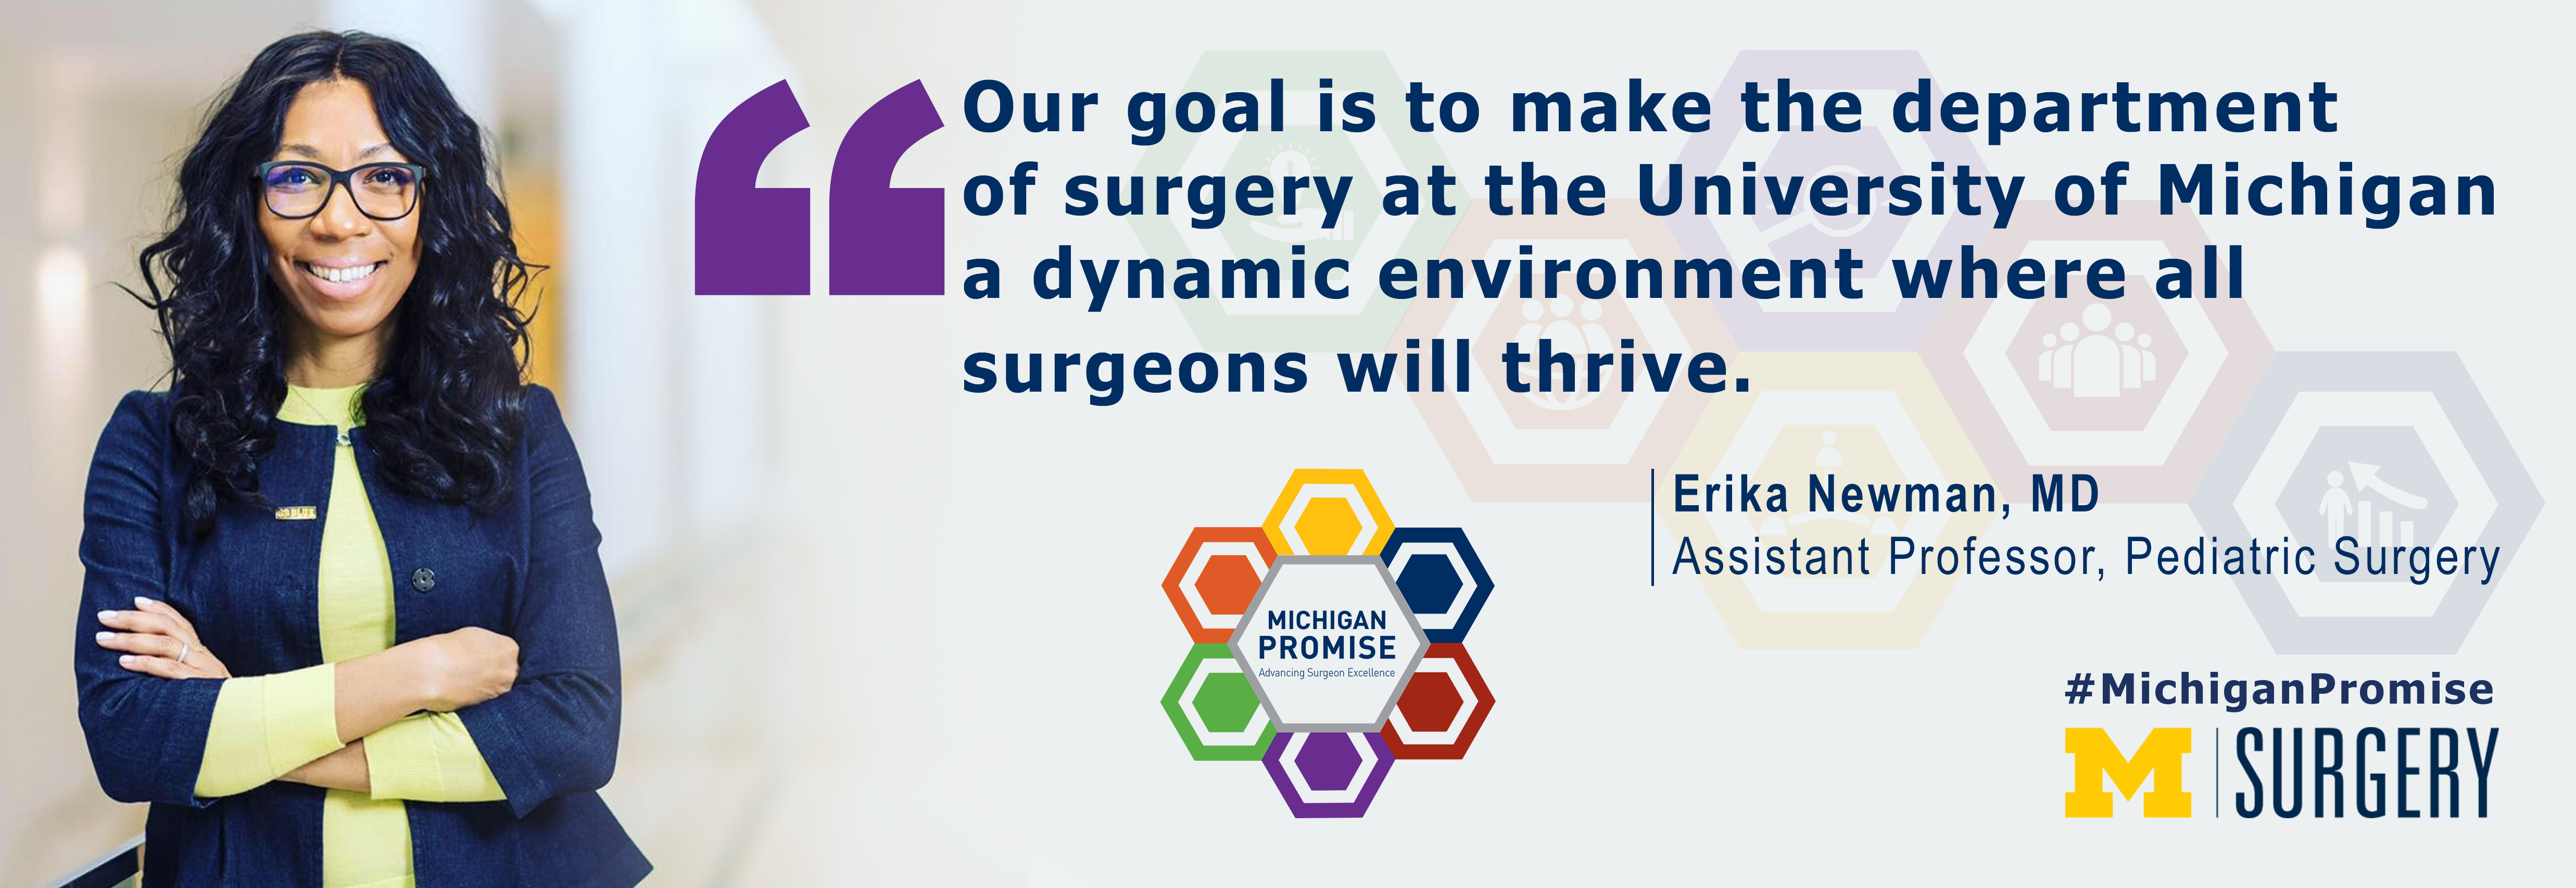 """Our goal is to make the department of surgery at the University of Michigan a dynamic environment where all surgeons will thrive."" Erika Newman, MD Assistant Professor, Pediatric Surgery #MichiganPromise"